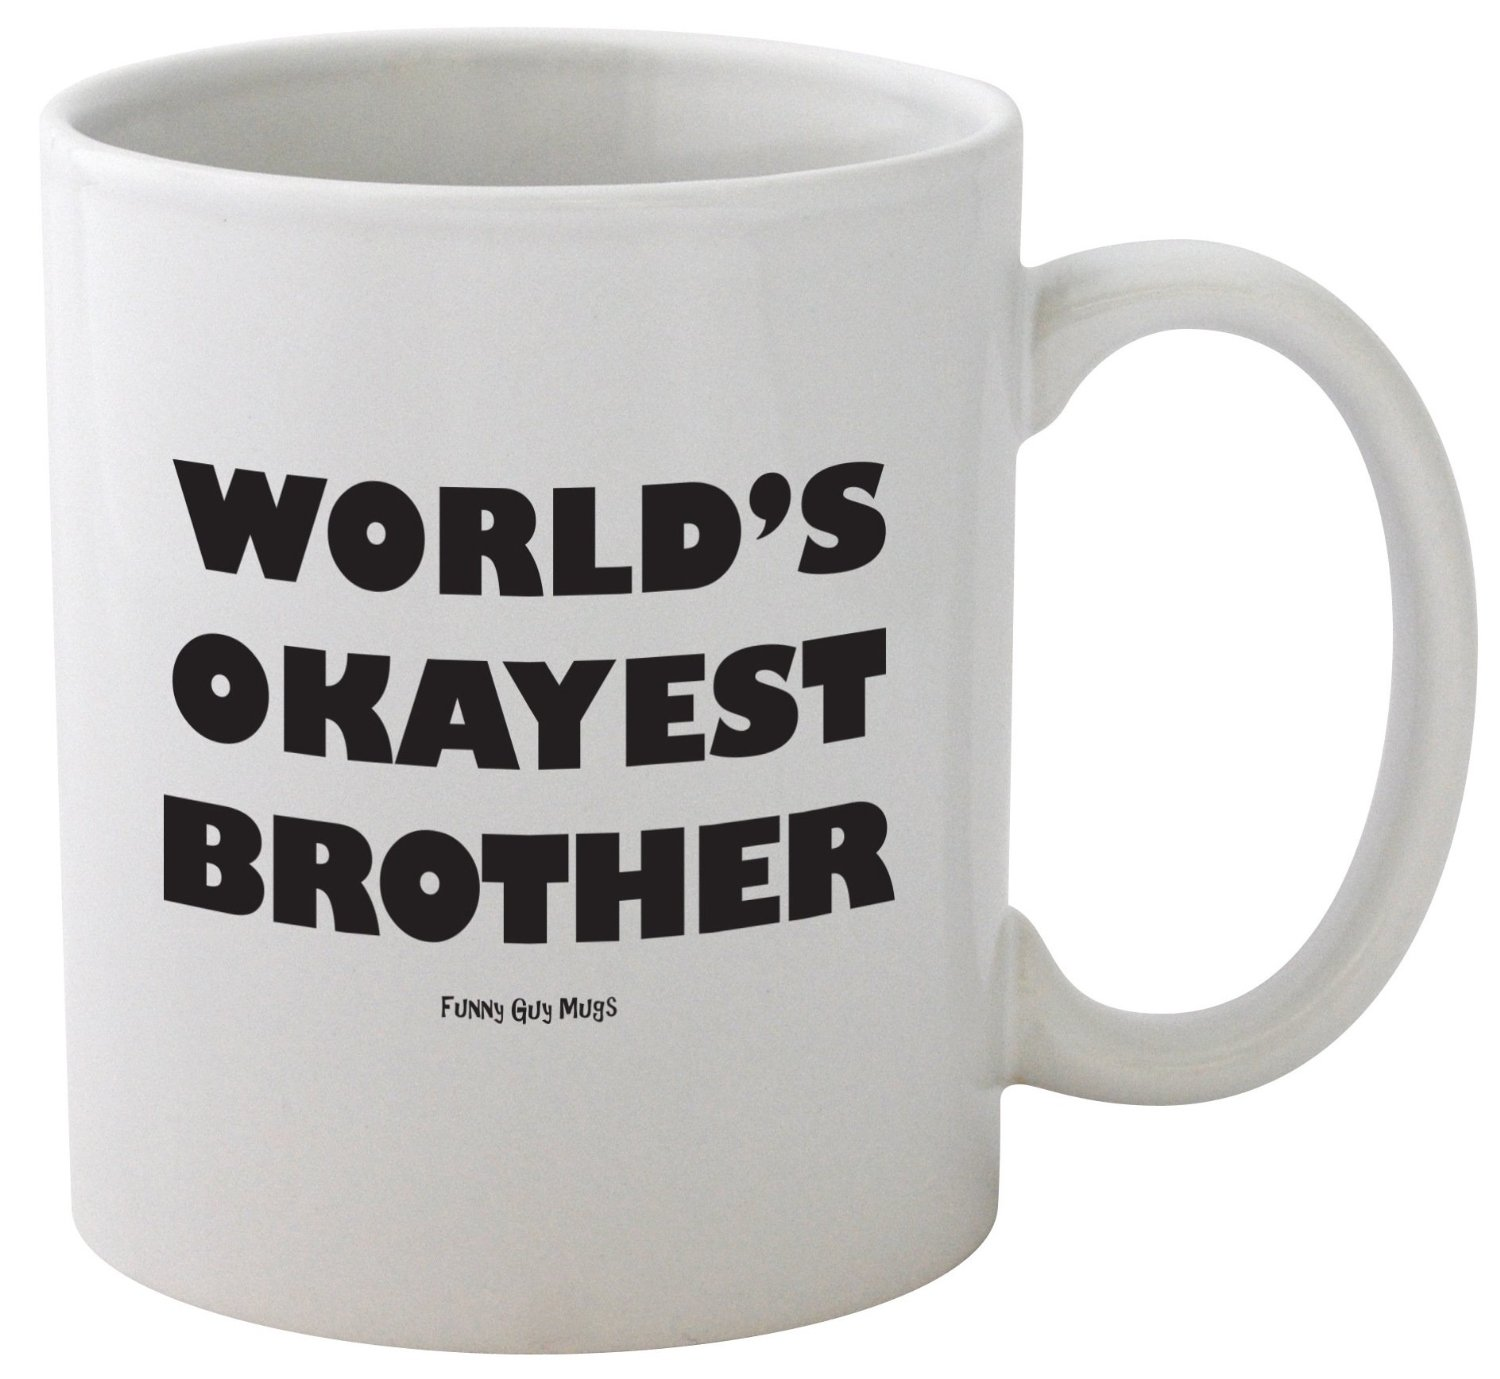 okayest-brother-mug